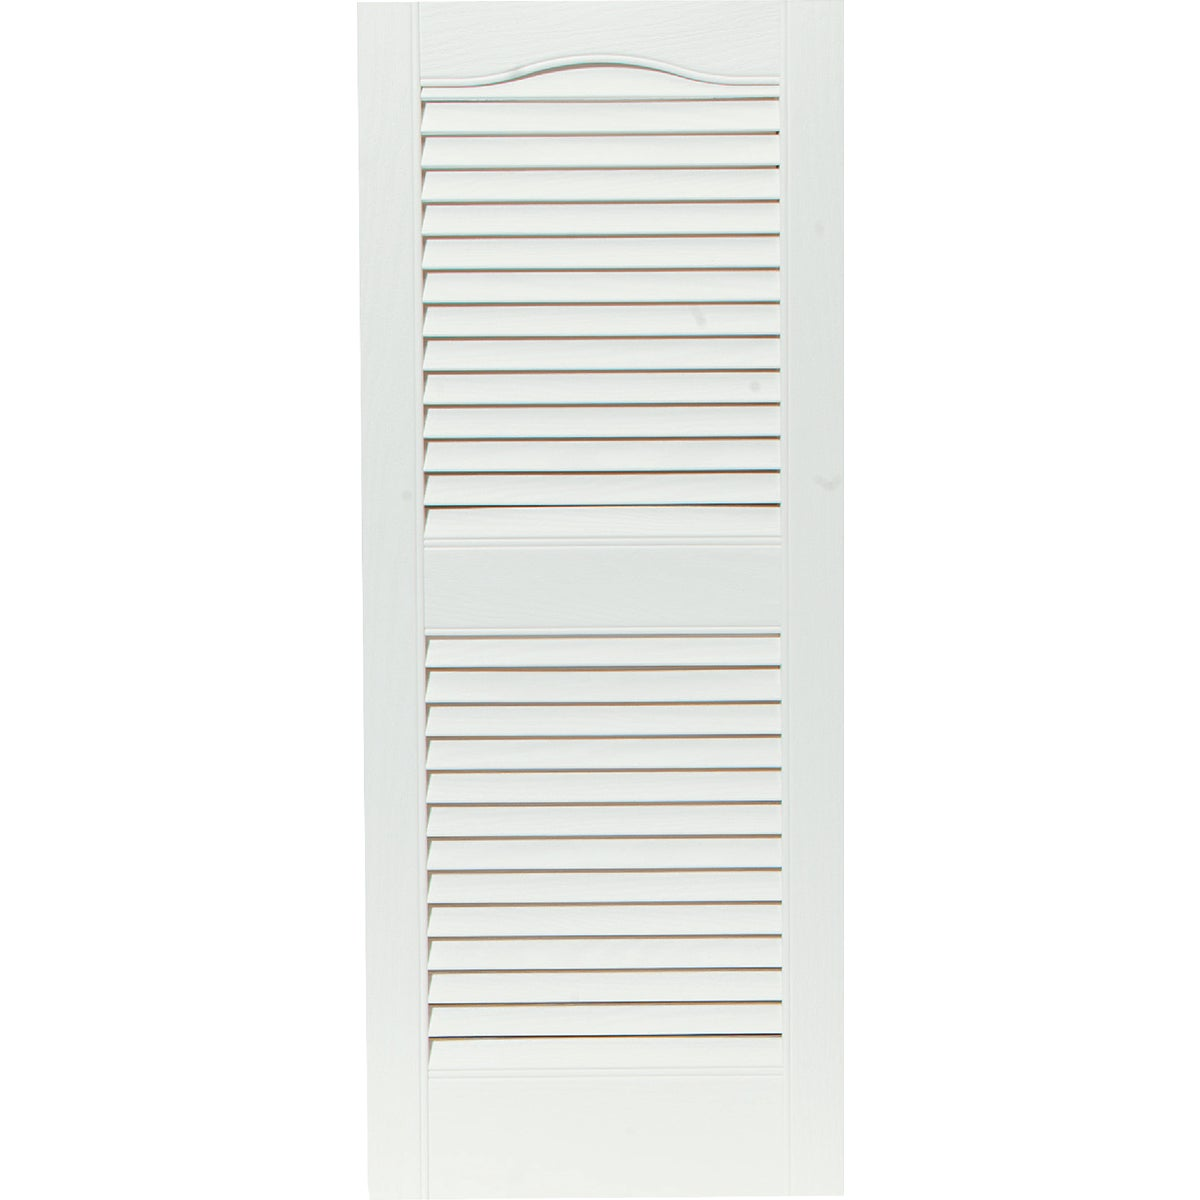 15X36 WHT LOUVER SHUTTER - 020140036001 by The Tapco Group